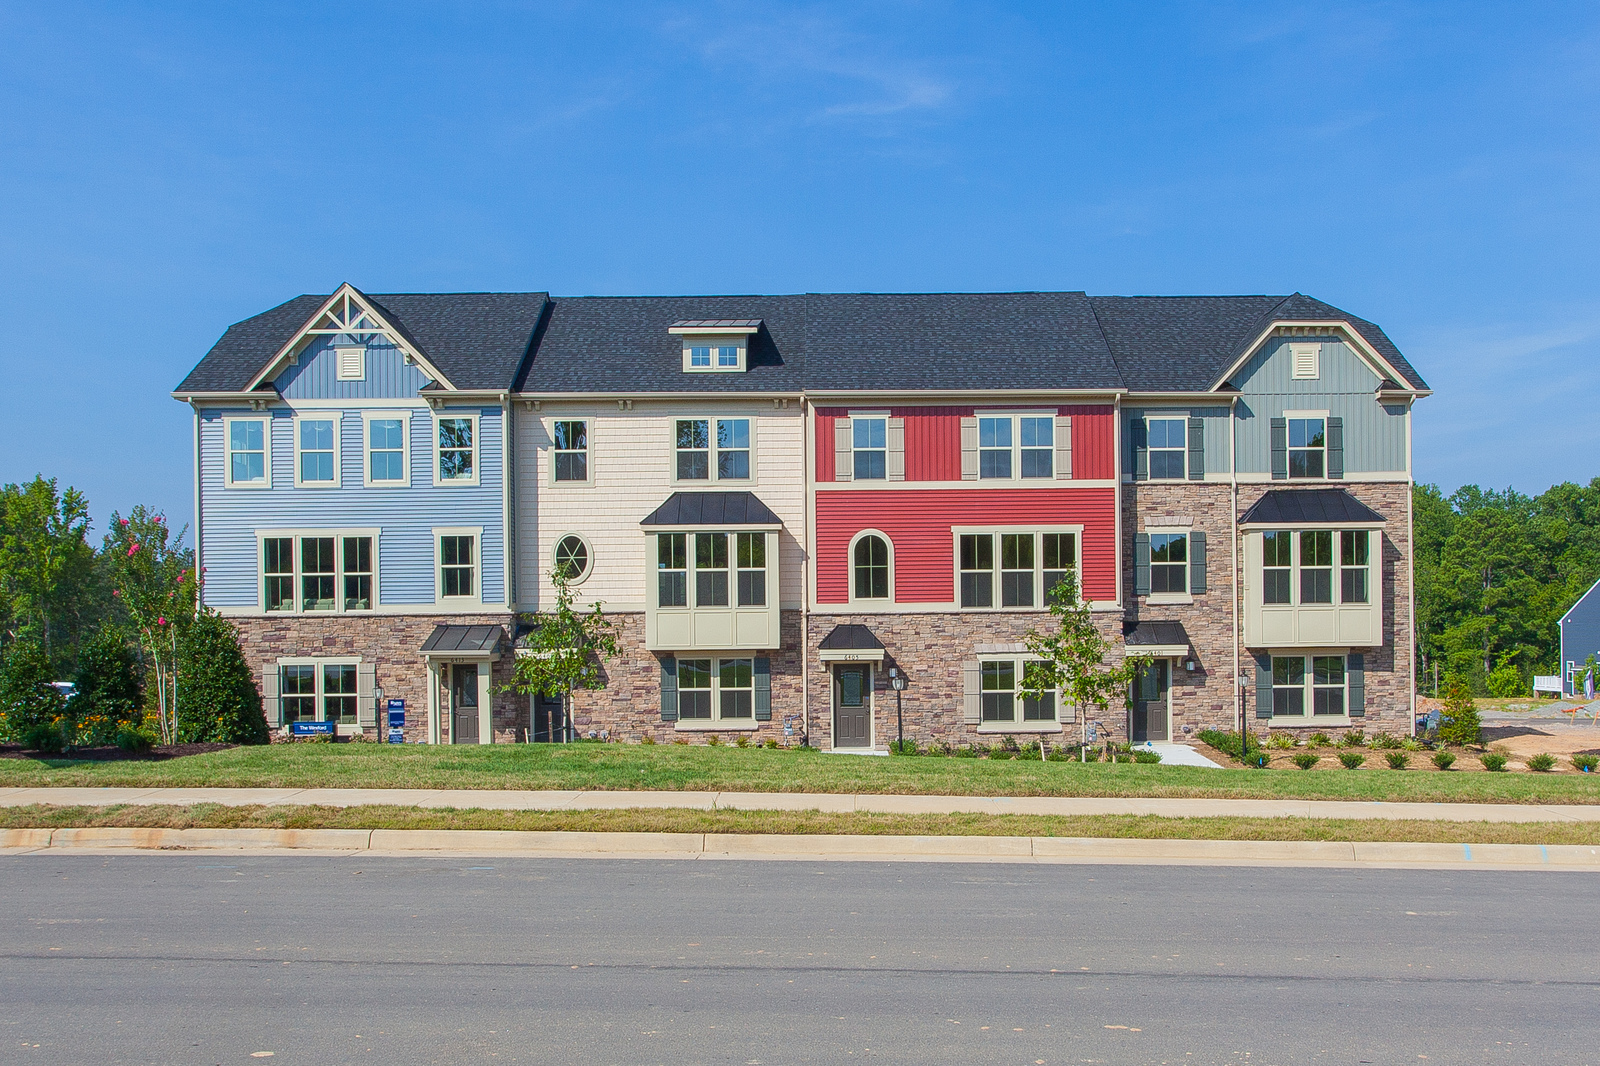 New Wexford Townhome Model for sale at The Overlook At Southpointe ...